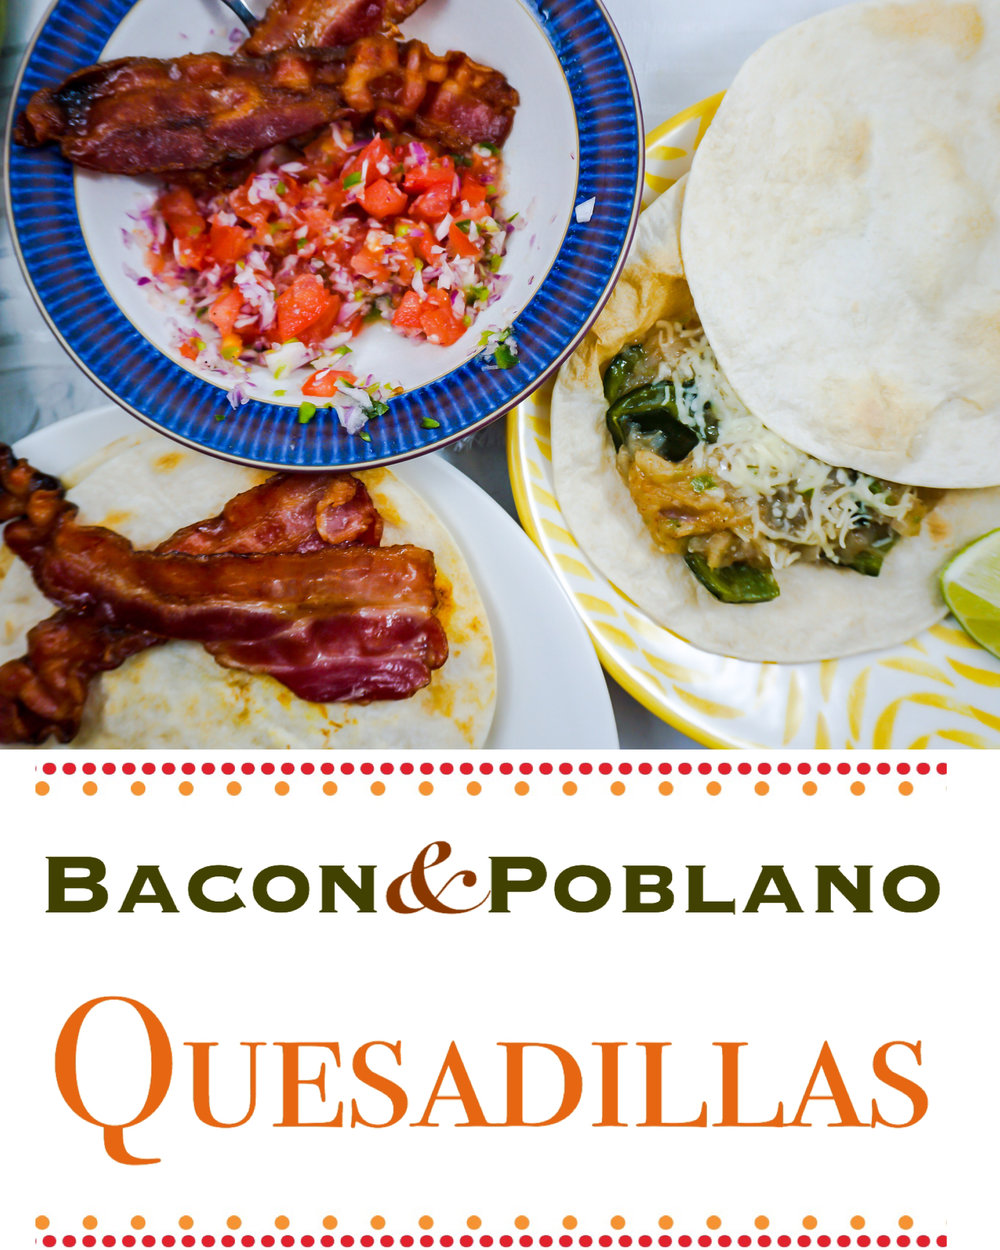 Bacon = Yum 👅 Cheese = Yum 😛 Super delicious quesadilla recipe!